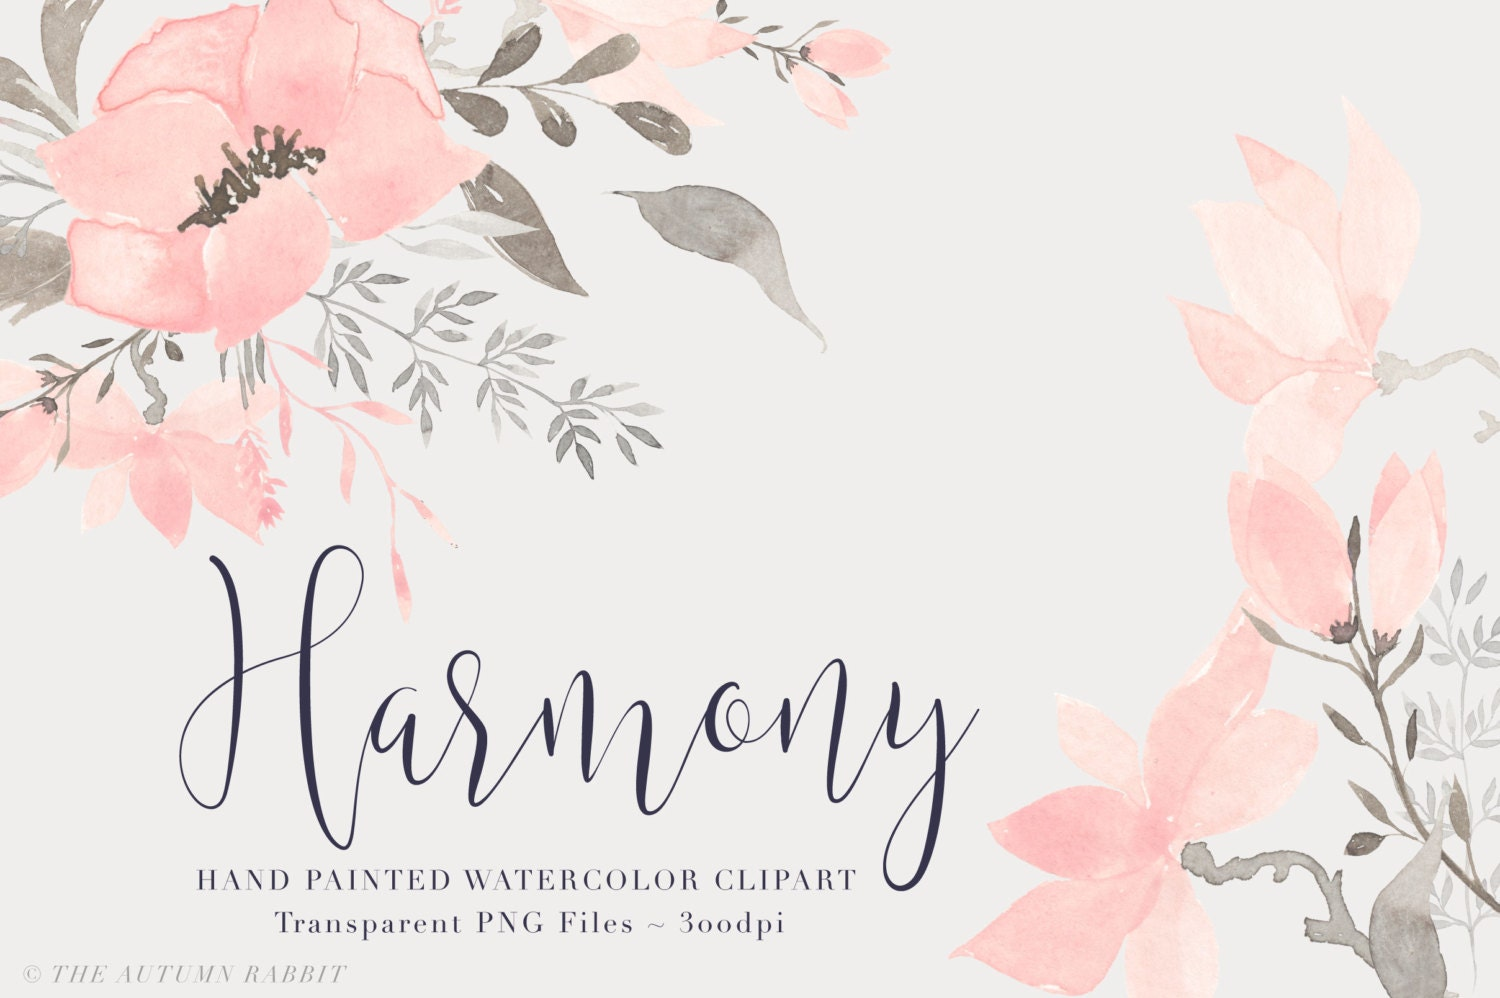 Pink watercolor flowers clipart files high res transparent - High resolution watercolor flowers ...